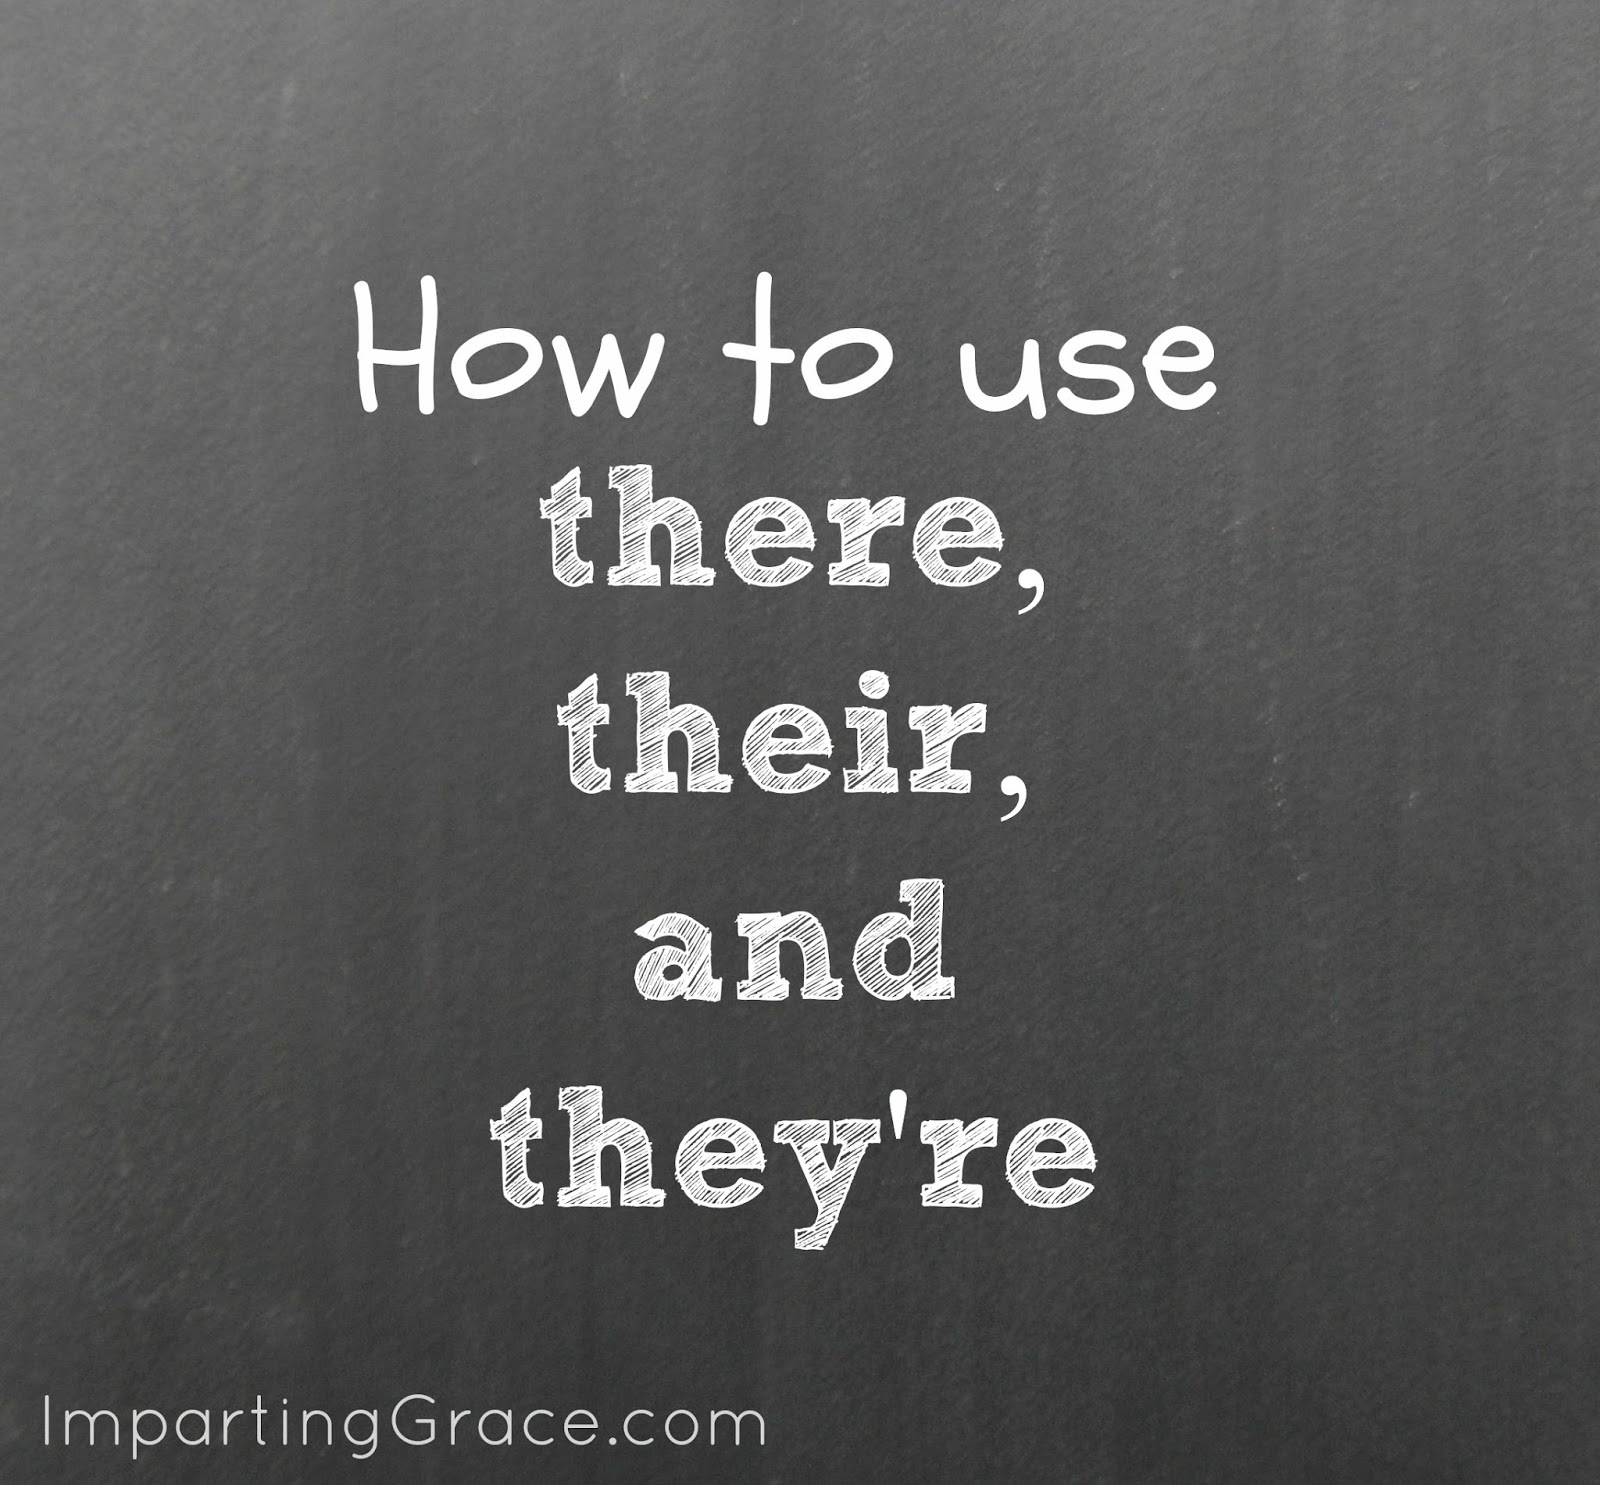 Imparting Grace English Teacher How To Use There Their